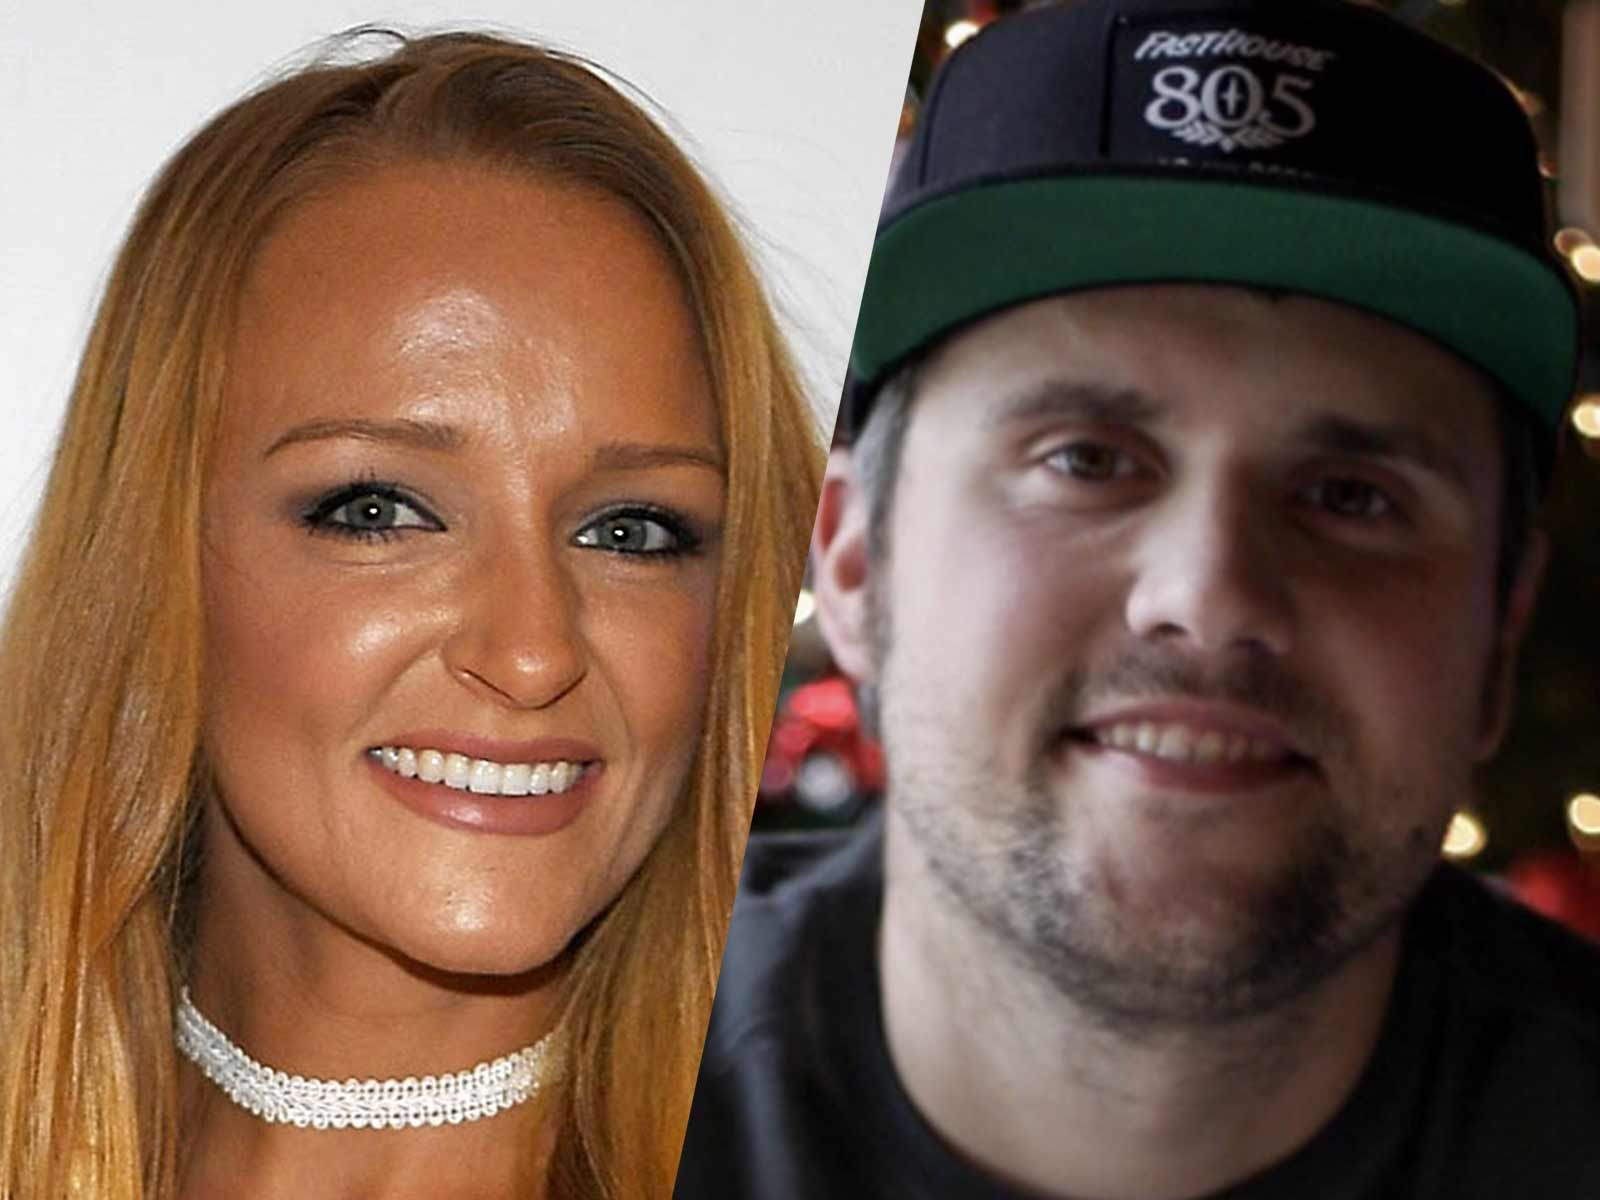 Maci Bookout – Will She Stay On 'Teen Mom' After Ryan Edwards' Firing?